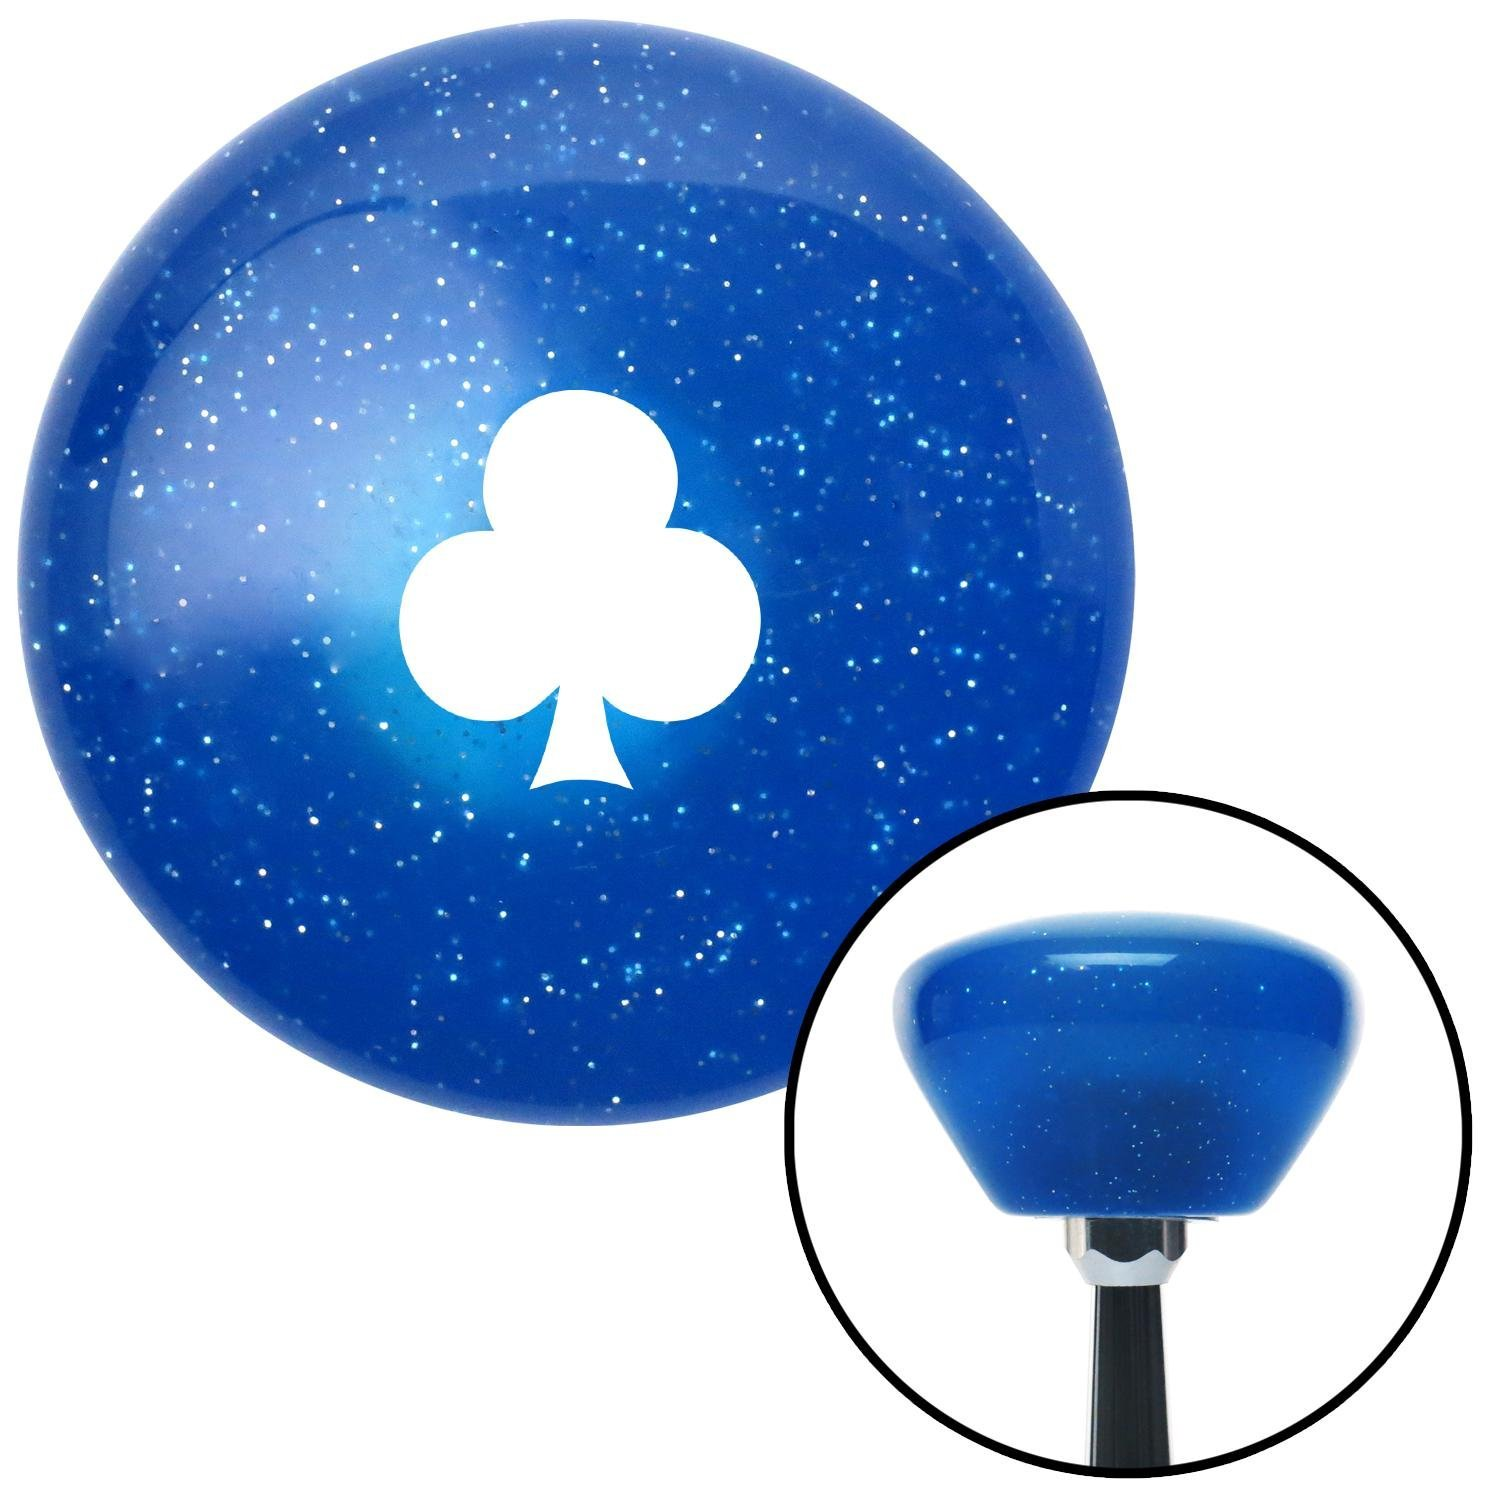 American Shifter 289248 Shift Knob White Clubs Blue Retro Metal Flake with M16 x 1.5 Insert